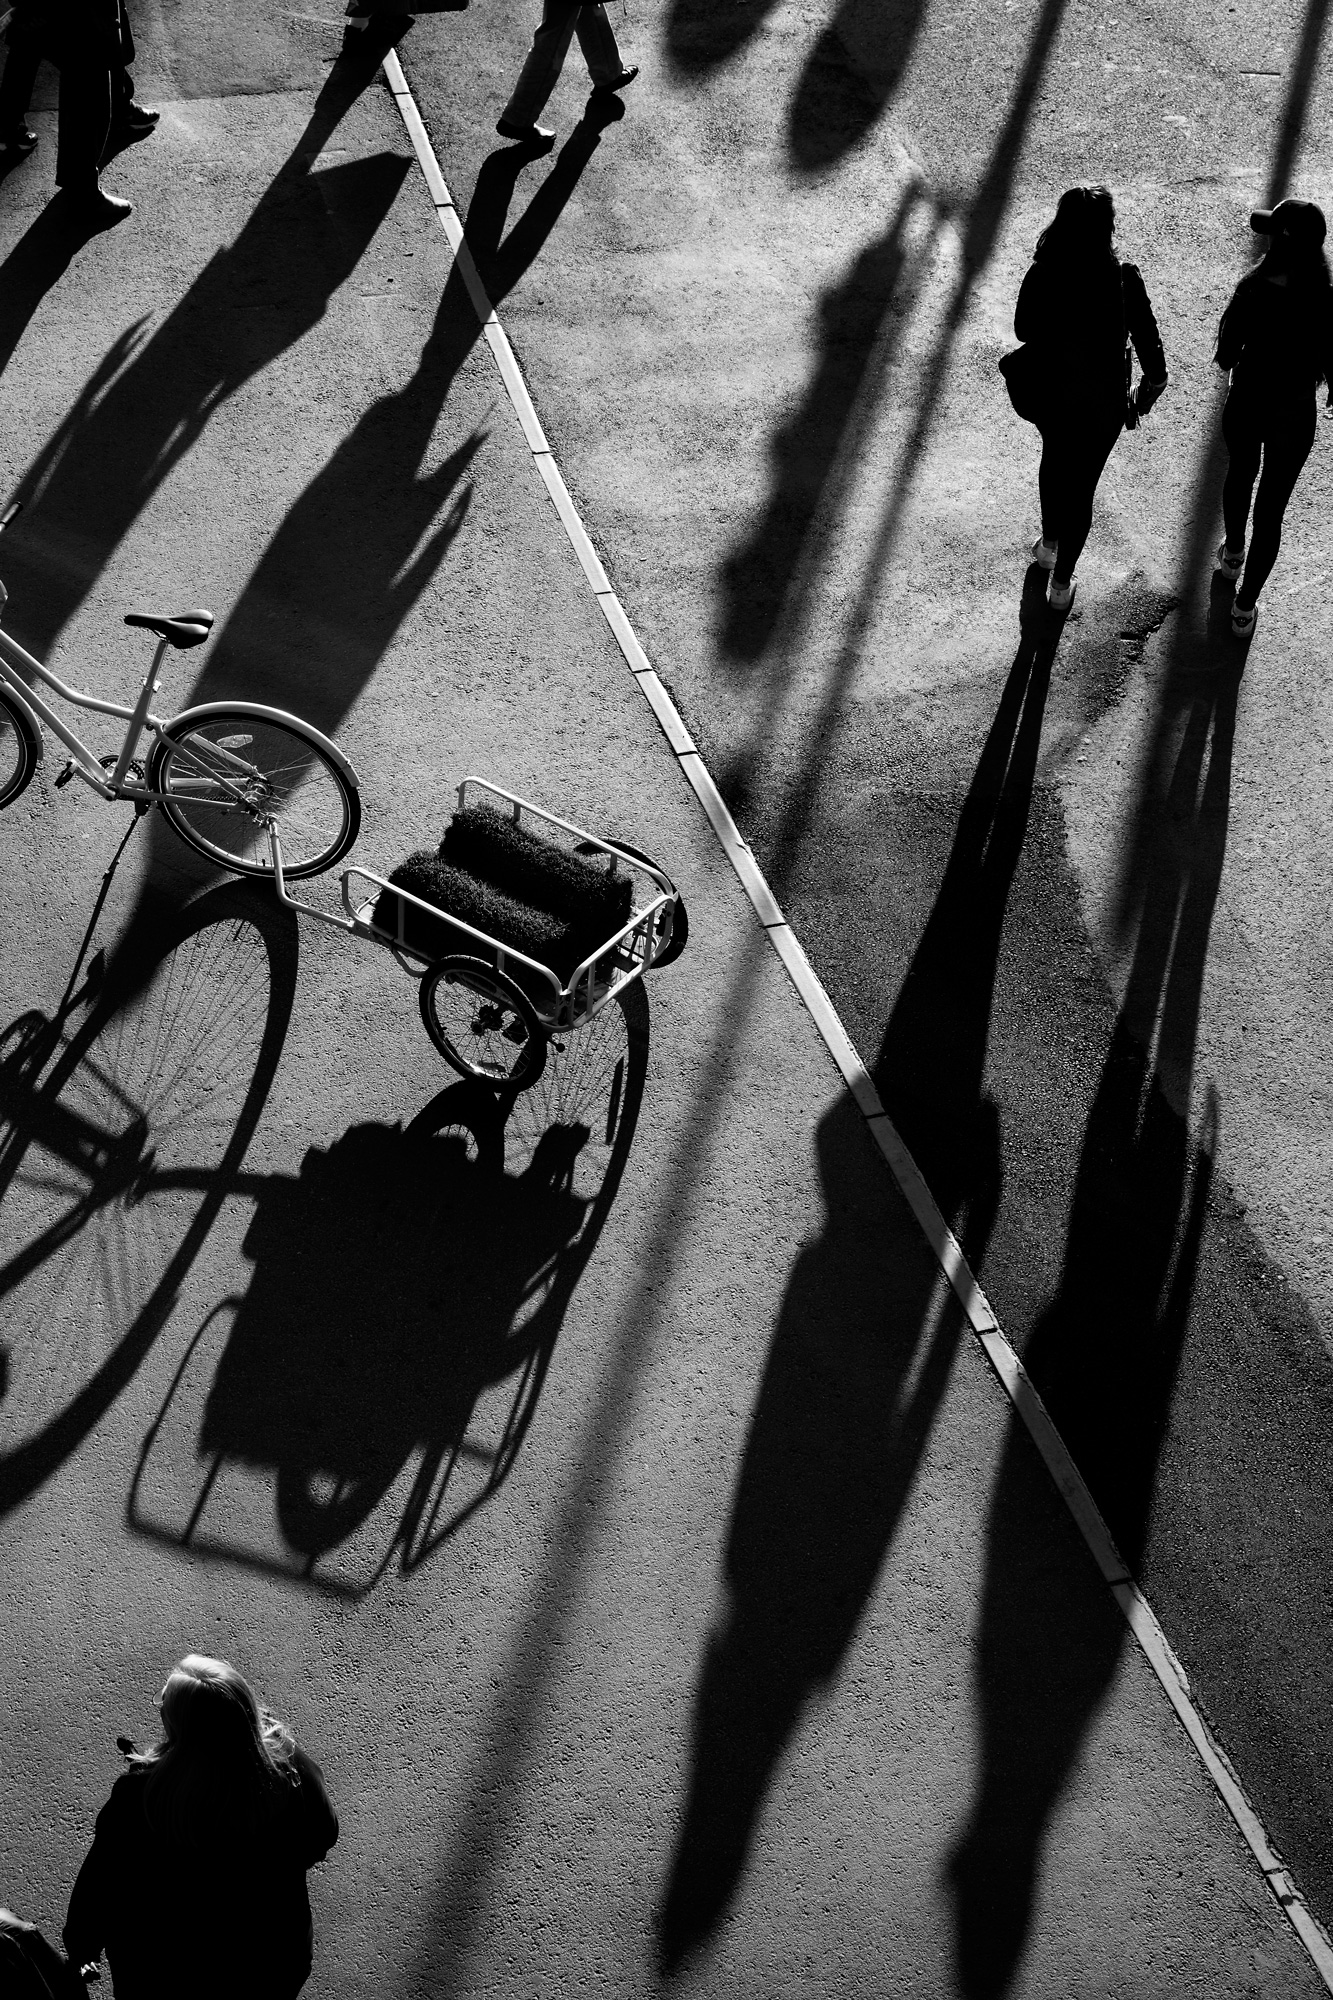 A streetscape in black and white, with a parked bicycle and walking people casting long shadows.